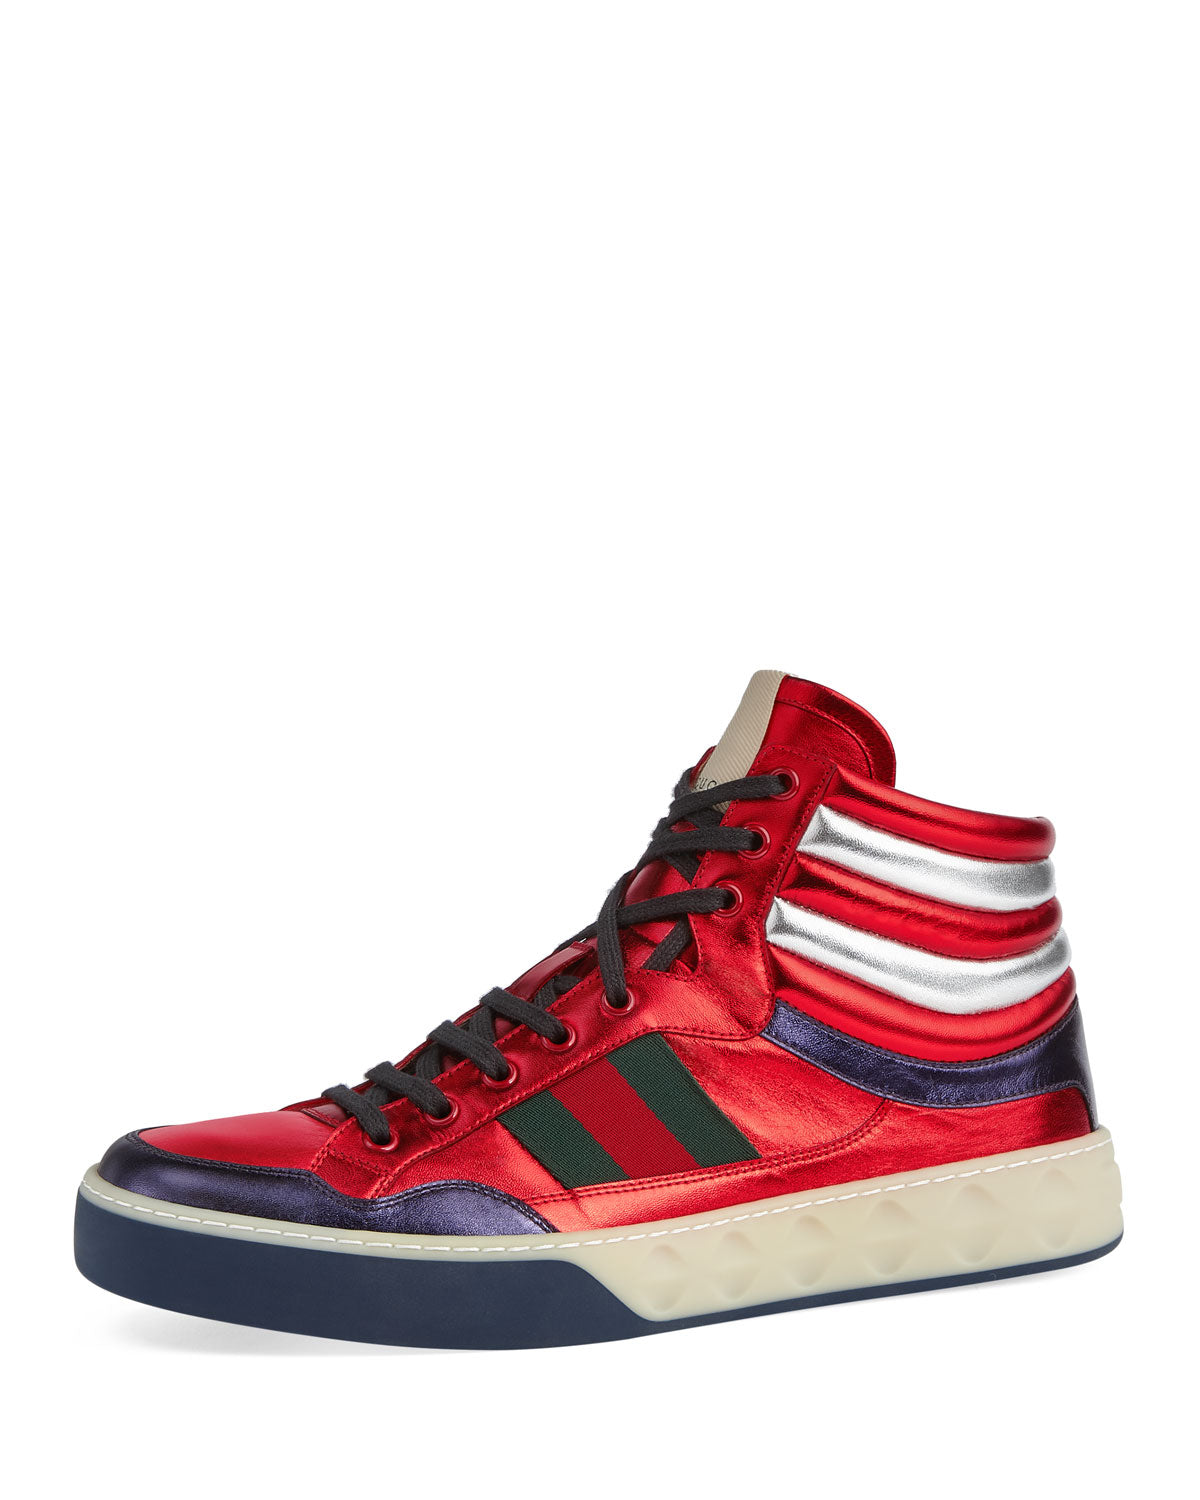 Gucci Red Metallic Leather High Top